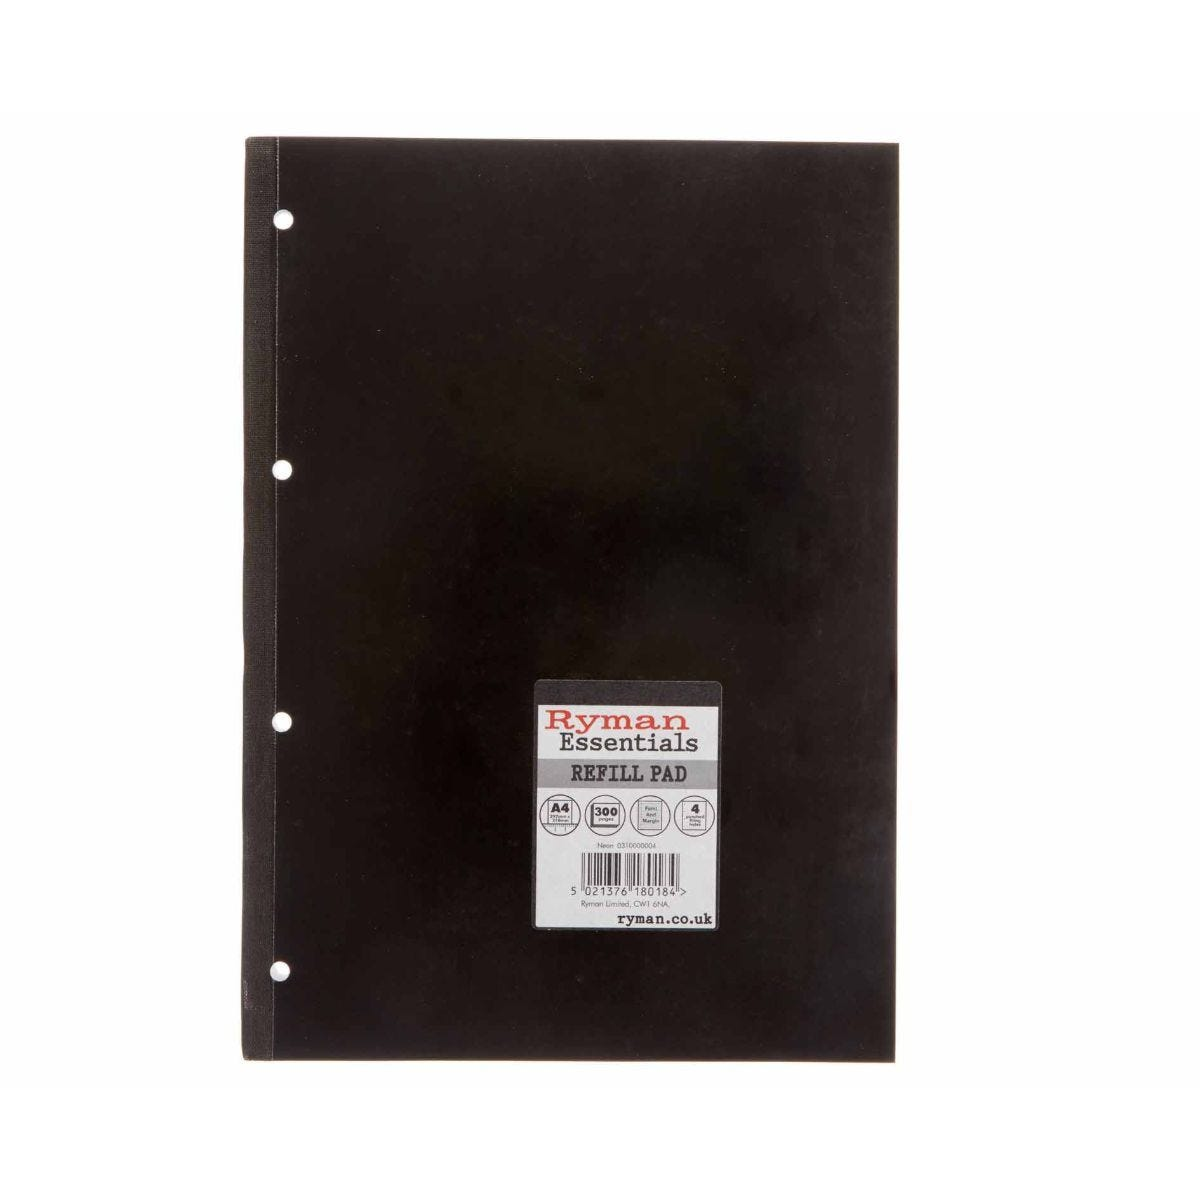 Ryman Essentials Promo Pad A4 300 Page Pack of 6 Black